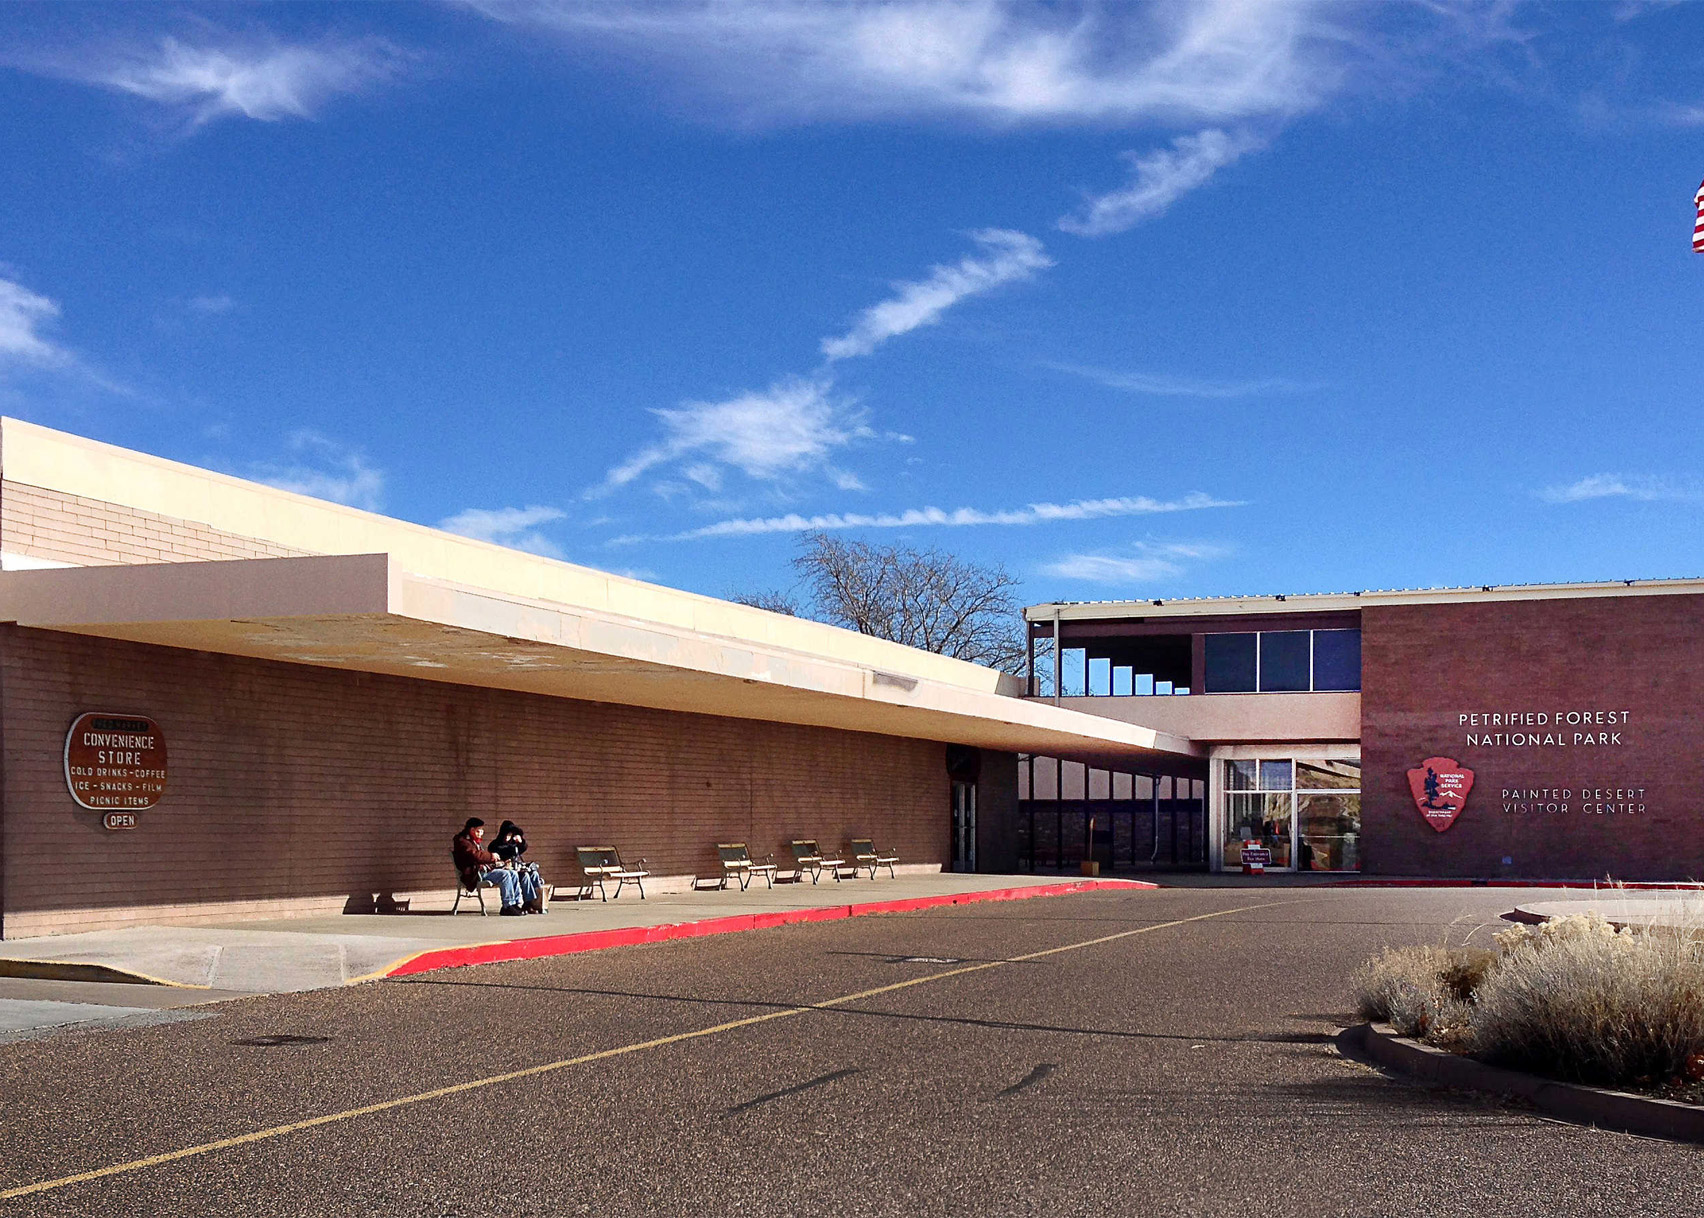 Painted Desert Community Center, Petrified Forest National Park, by Richard Neutra and Robert Alexander, 1963